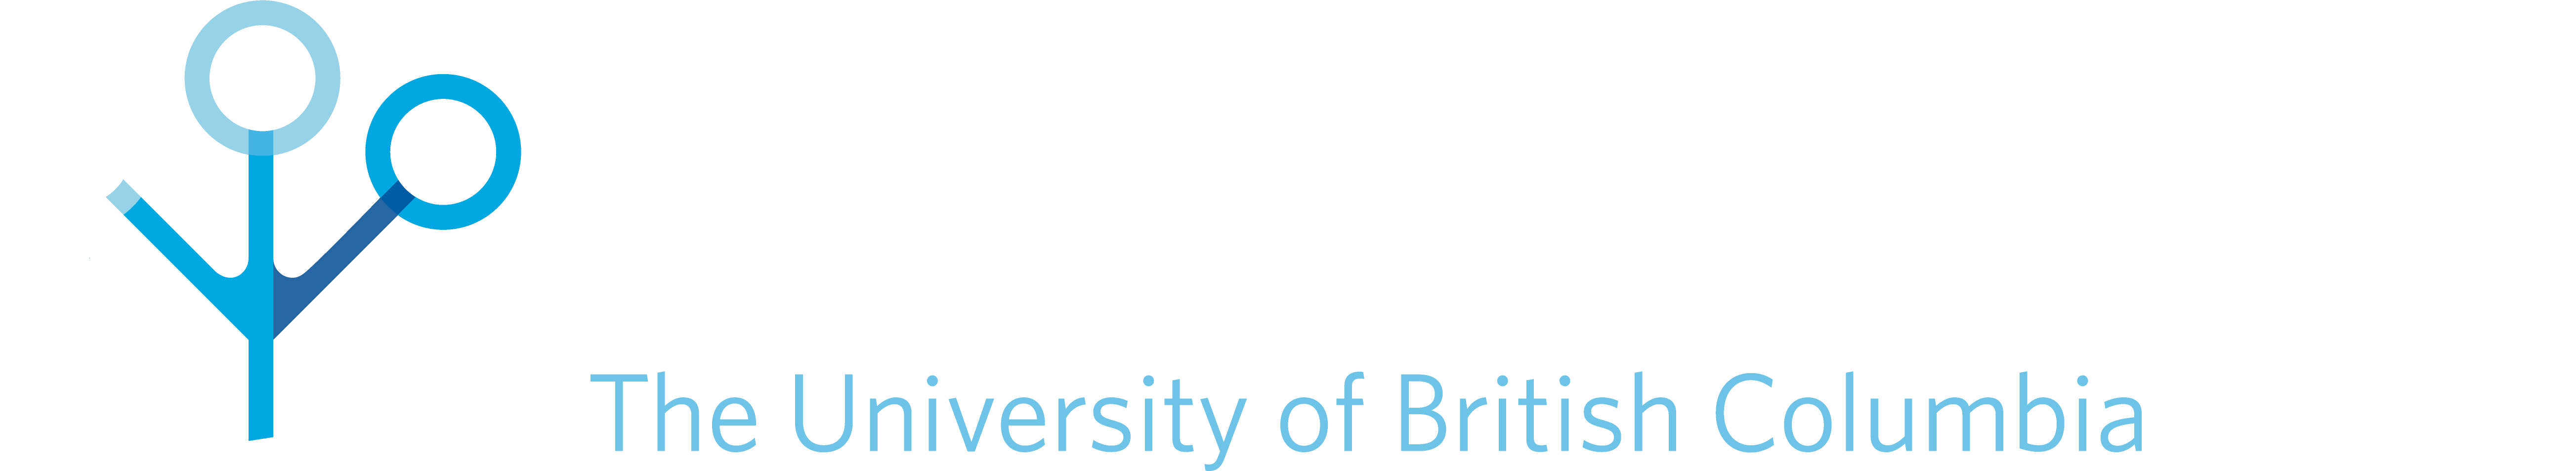 Swallowing Innovations Lab - The University of British Columbia